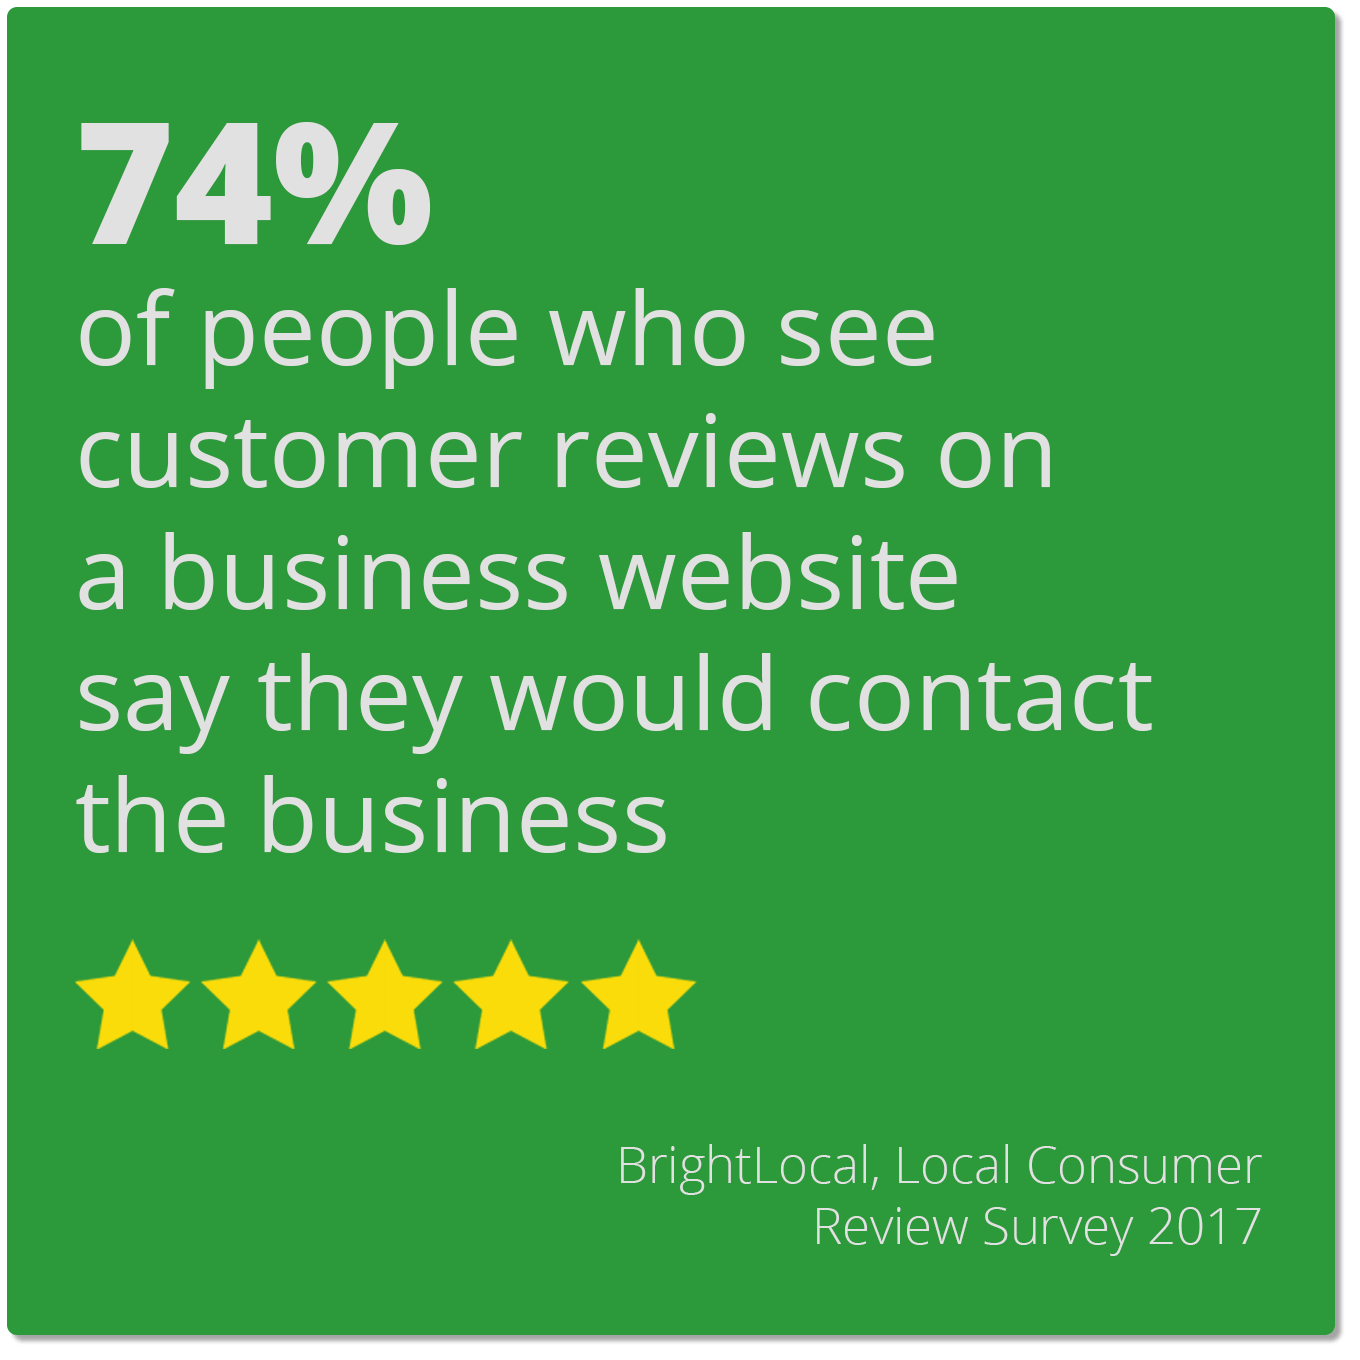 74% of people who see customer reviews on a business website say they would contact the business